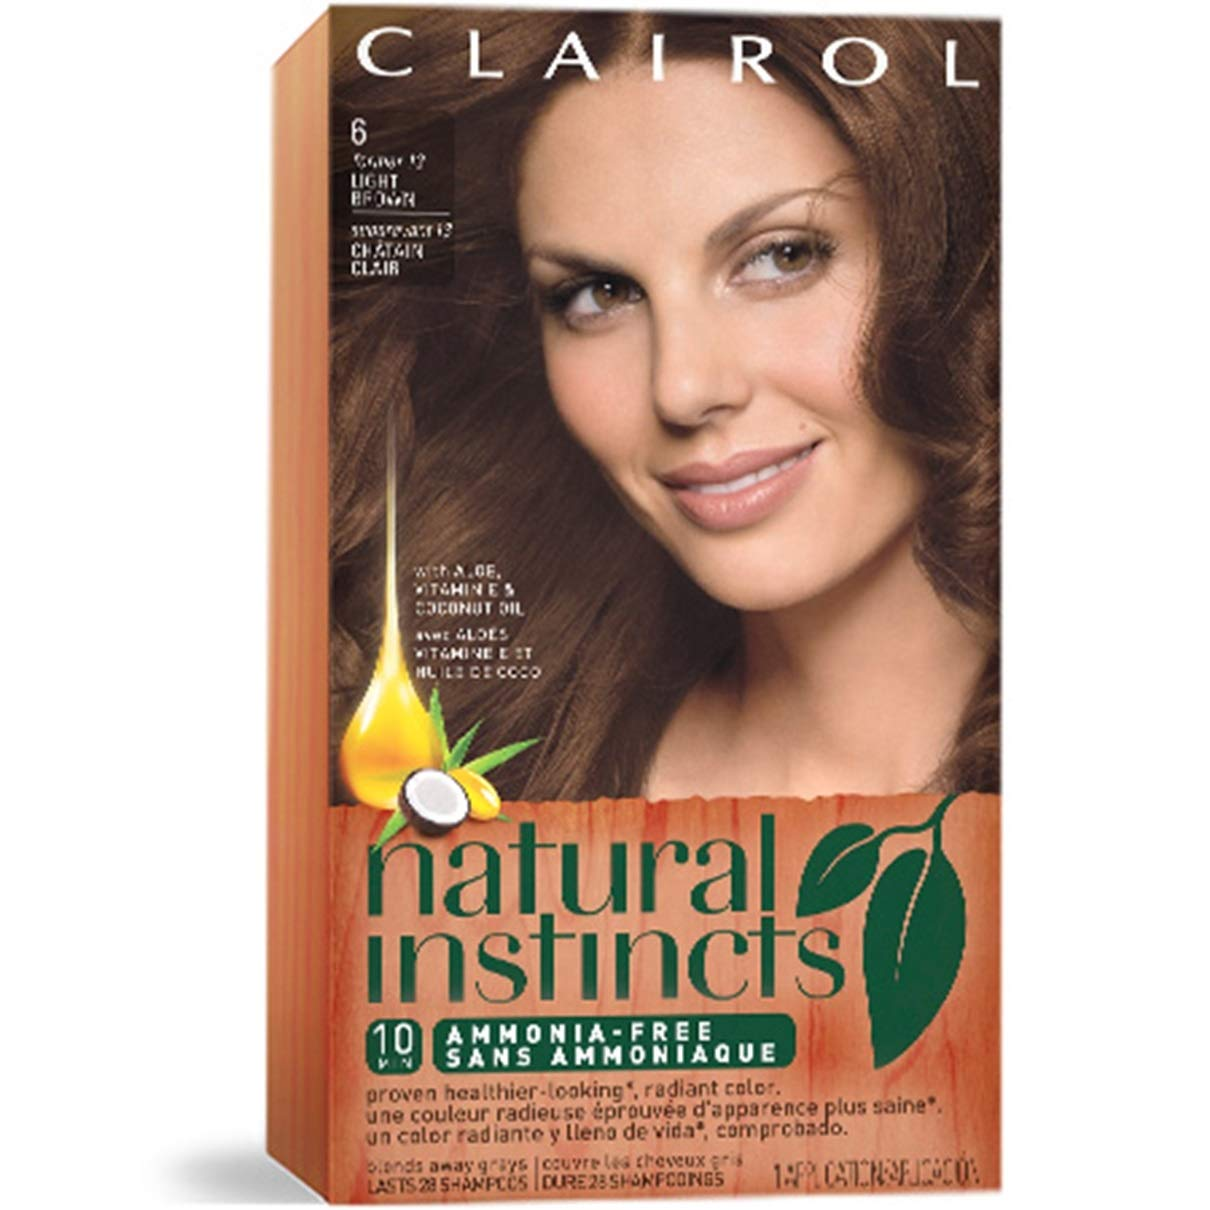 Clairol Natural Instincts Semi-Permanent Hair Color Kit, 13 Suede Light Brown Color, Ammonia Free, Long Lasting for 28 Shampoos, 3 Count, Pack of 3 by Clairol